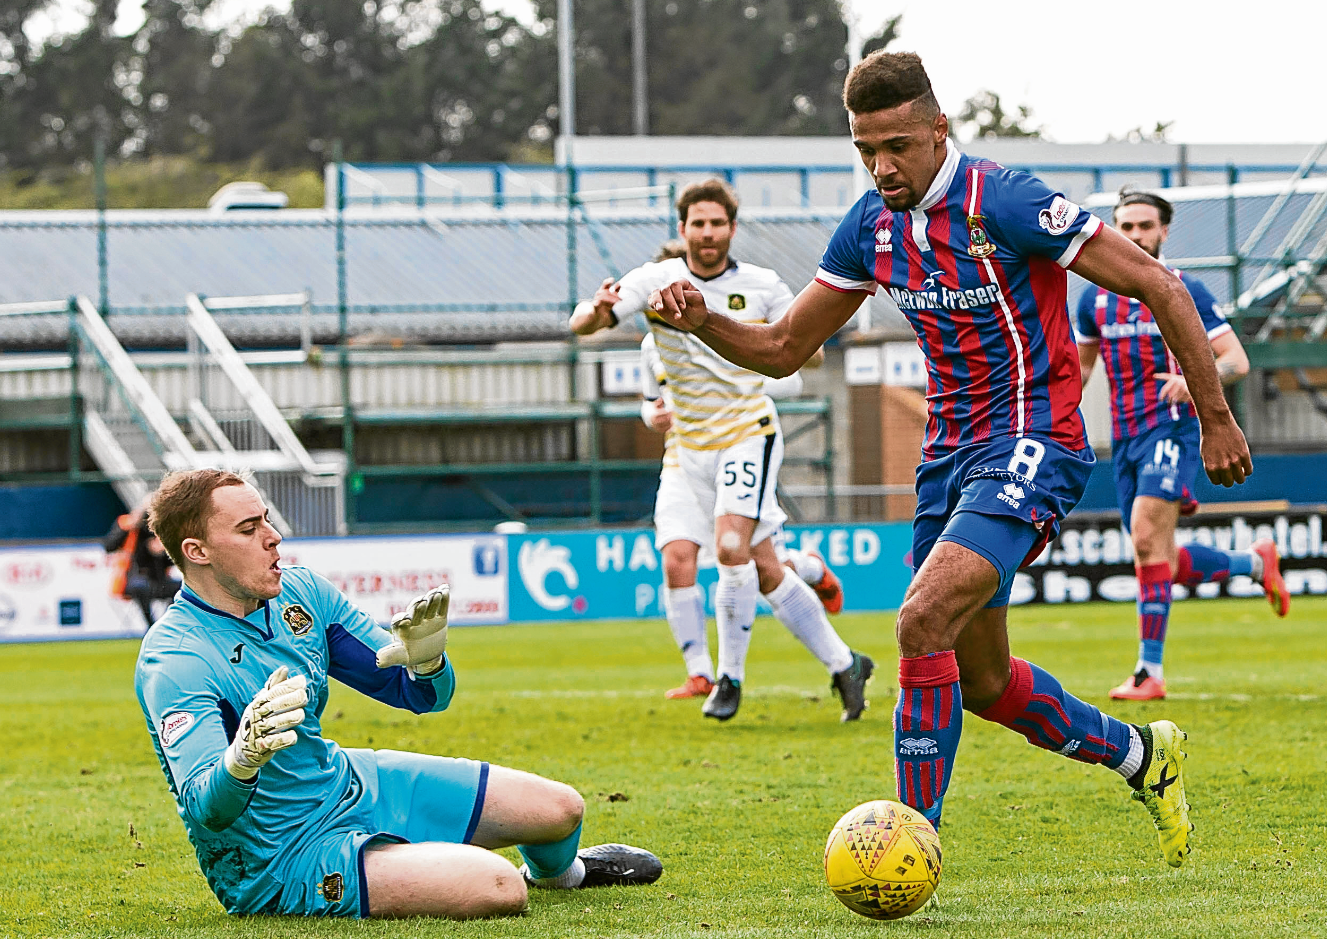 Nathan Austin scored twice for Caley Thistle.